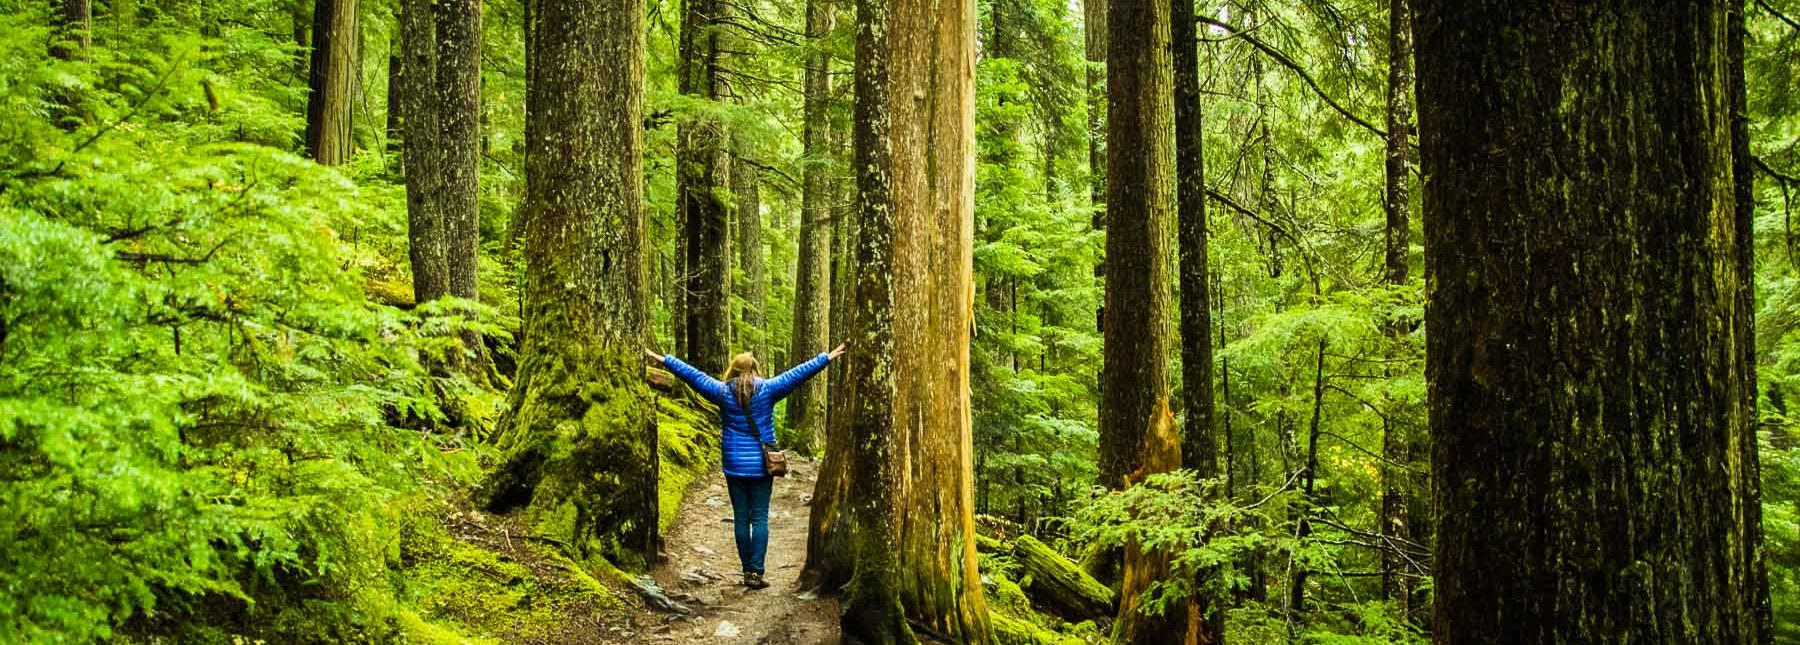 Forest Bathing and Blue Mind Life: The Time is Now